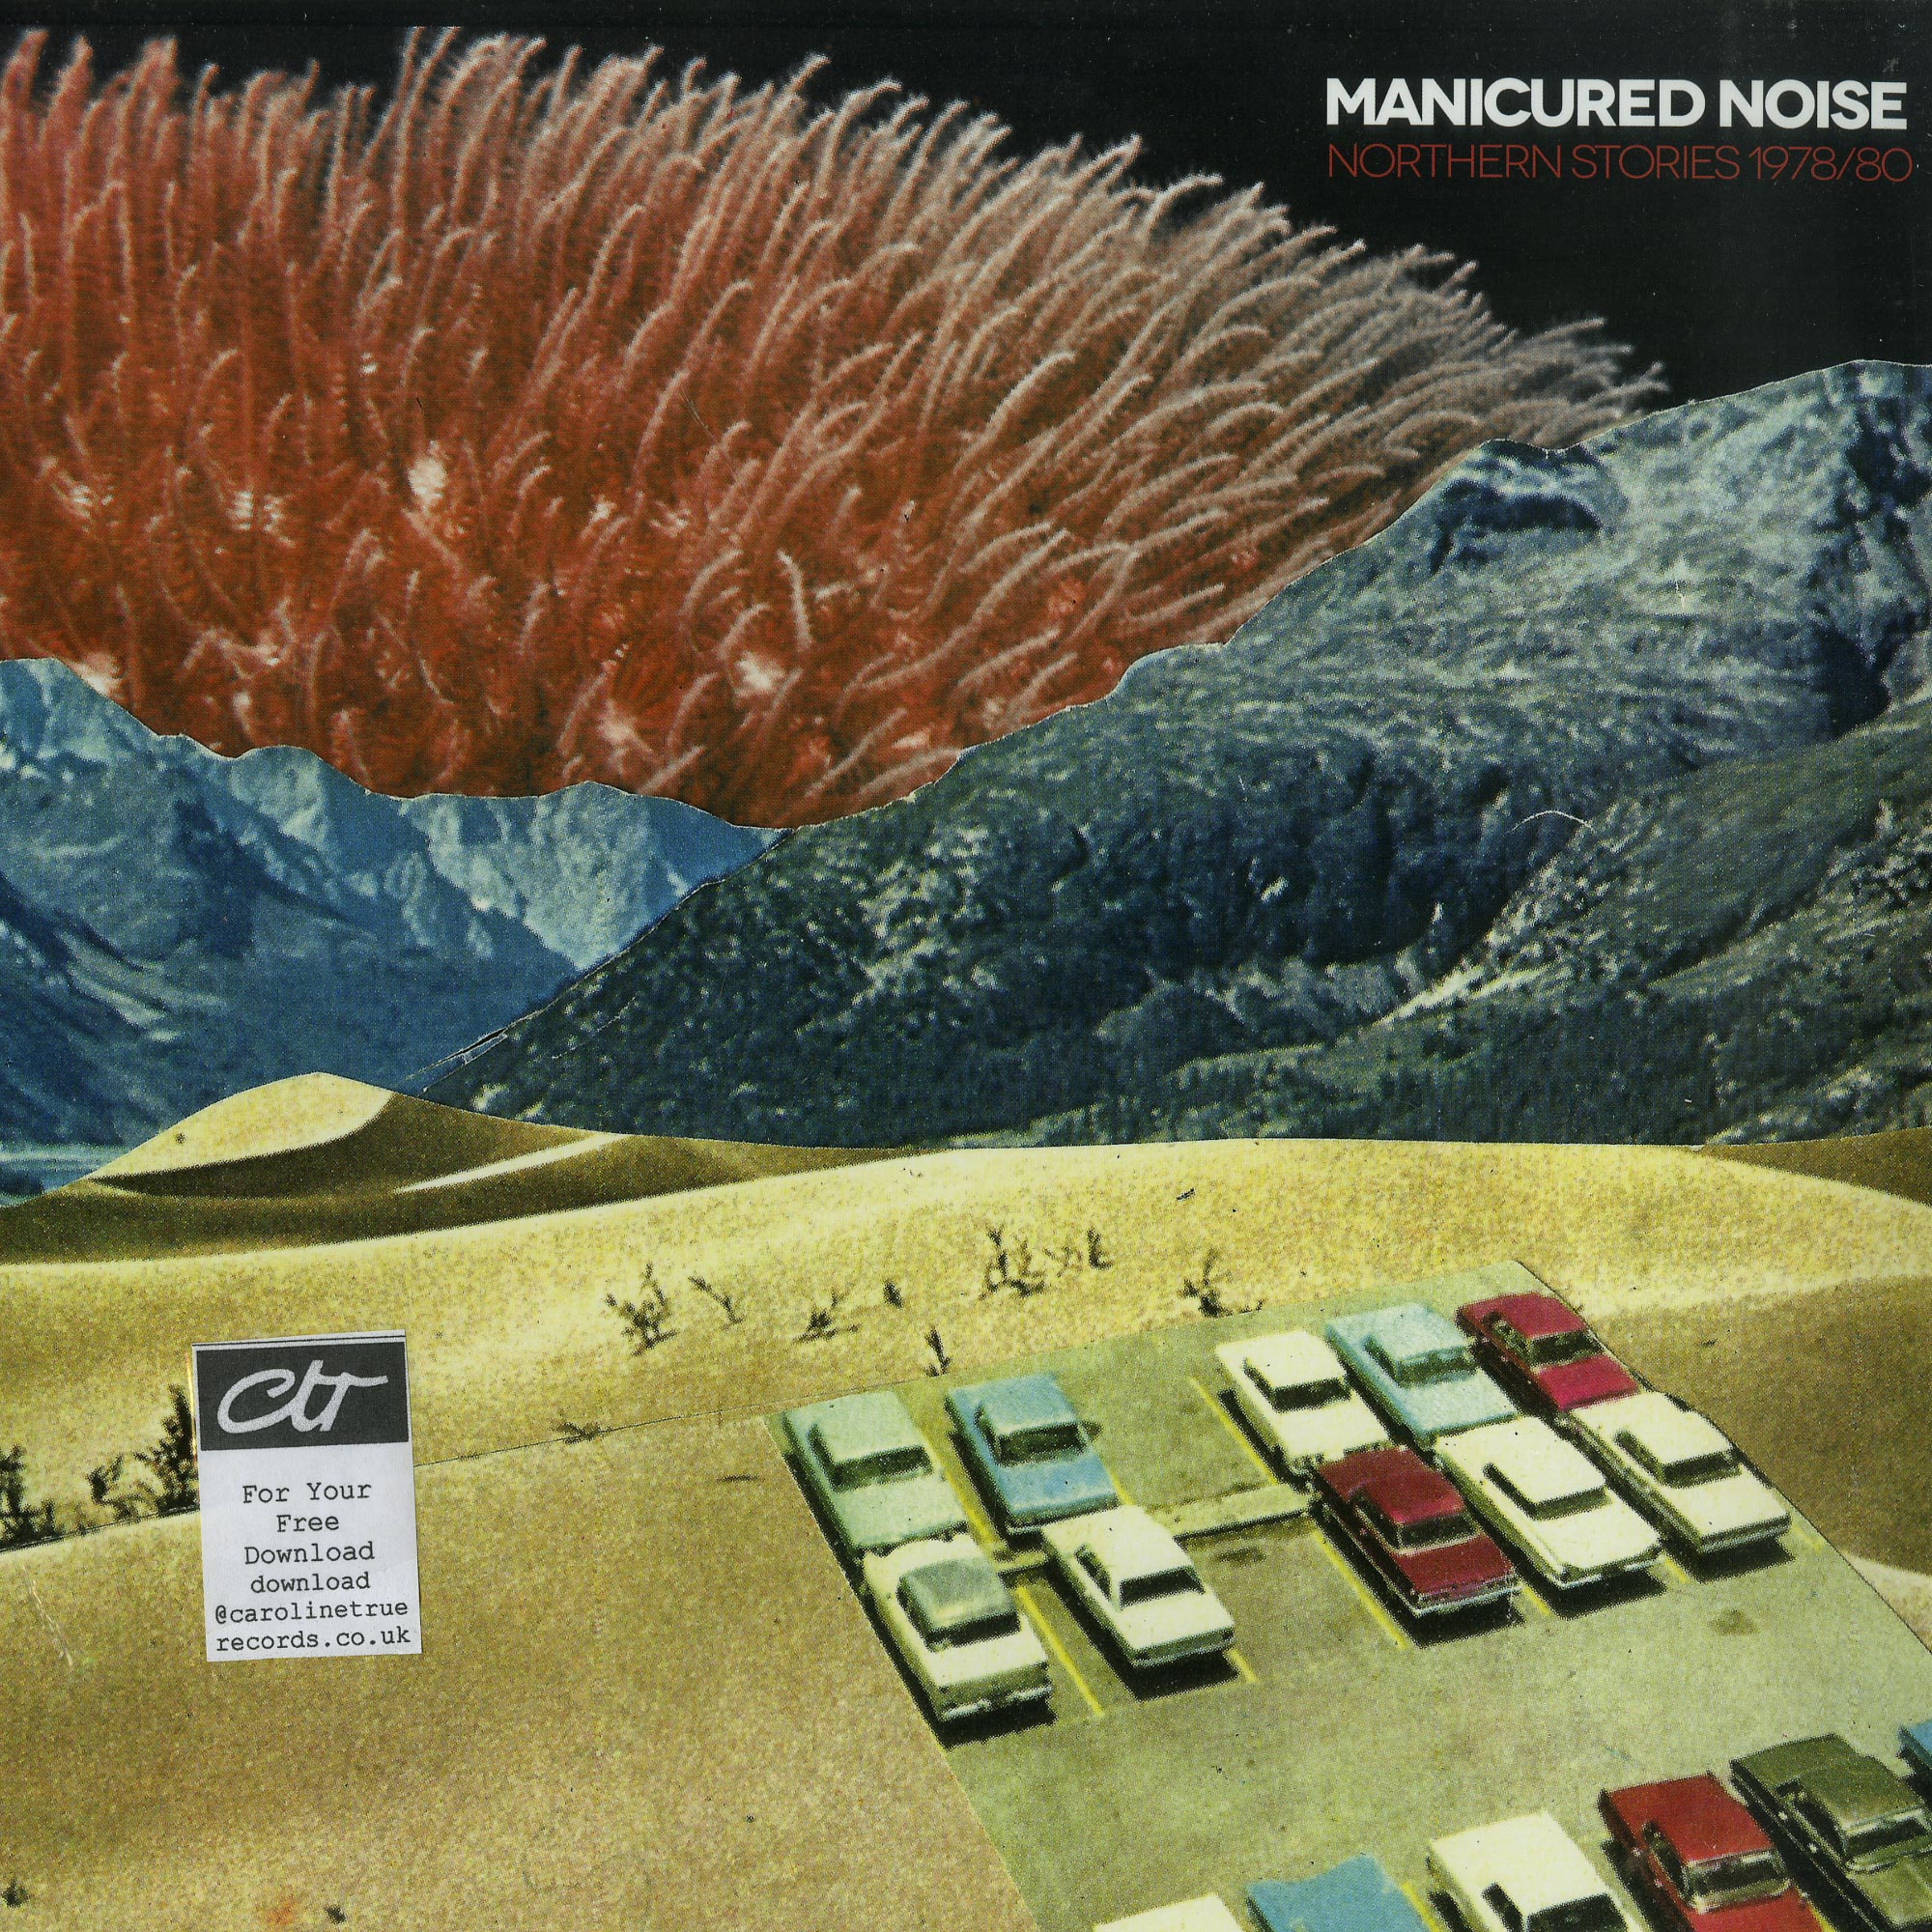 Manicured Noise - NORTHERN STORIES 1978 / 80